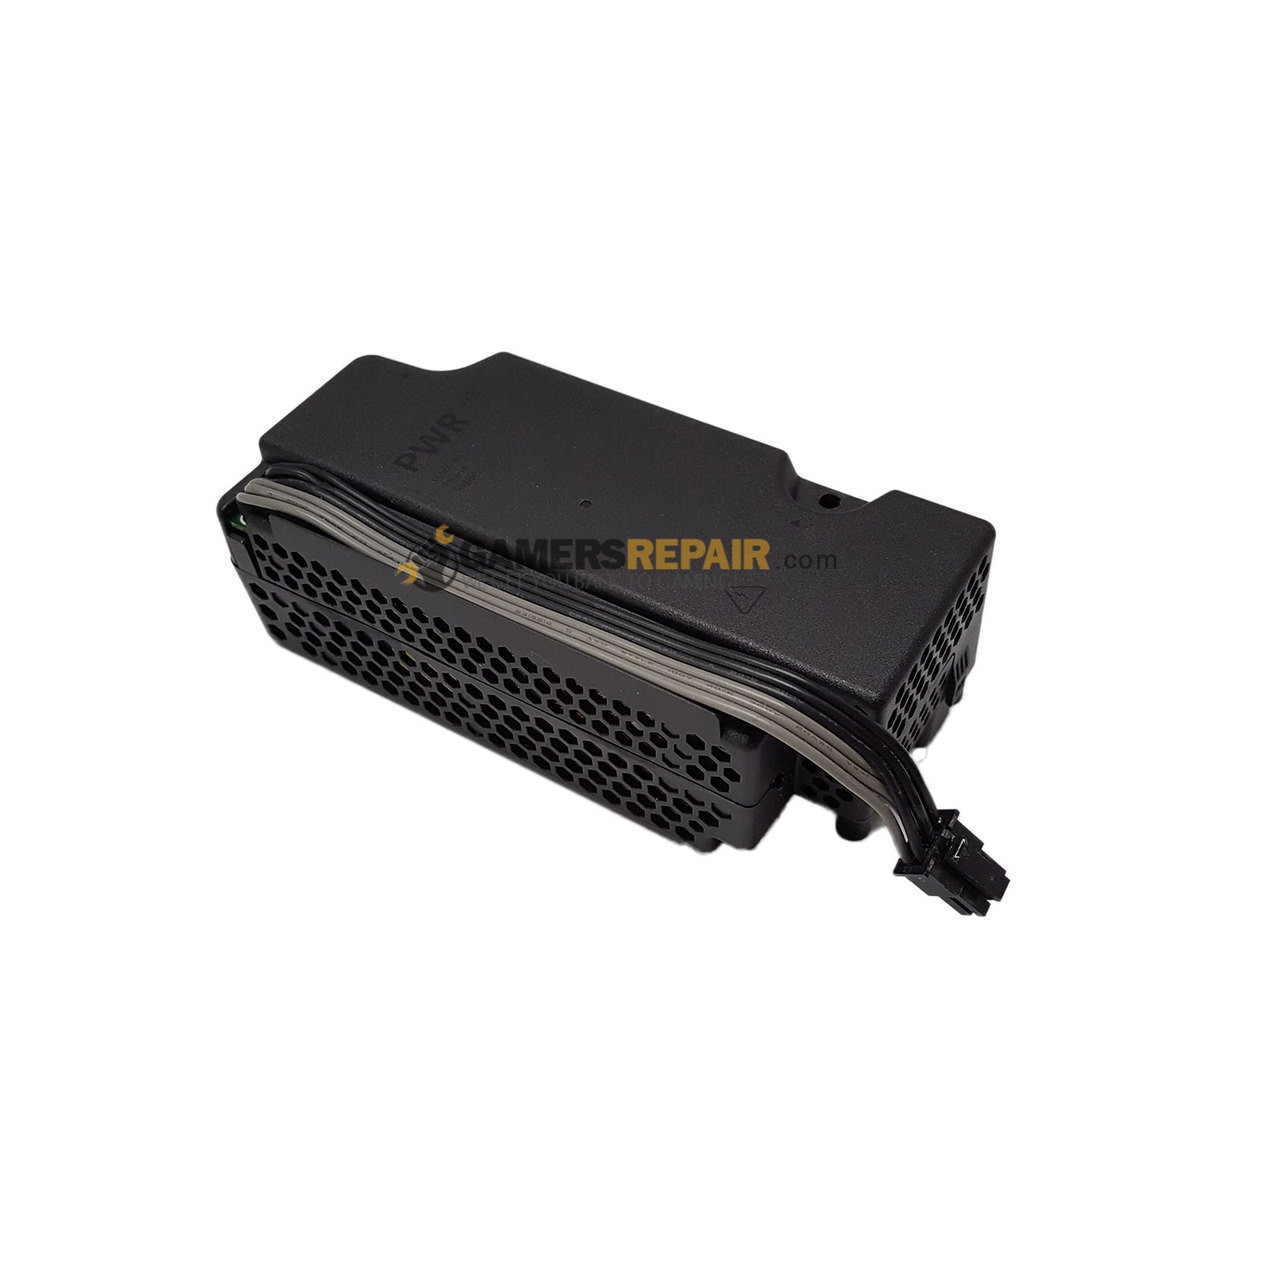 small resolution of  oem power supply pa 1131 13mx for xbox one s slim